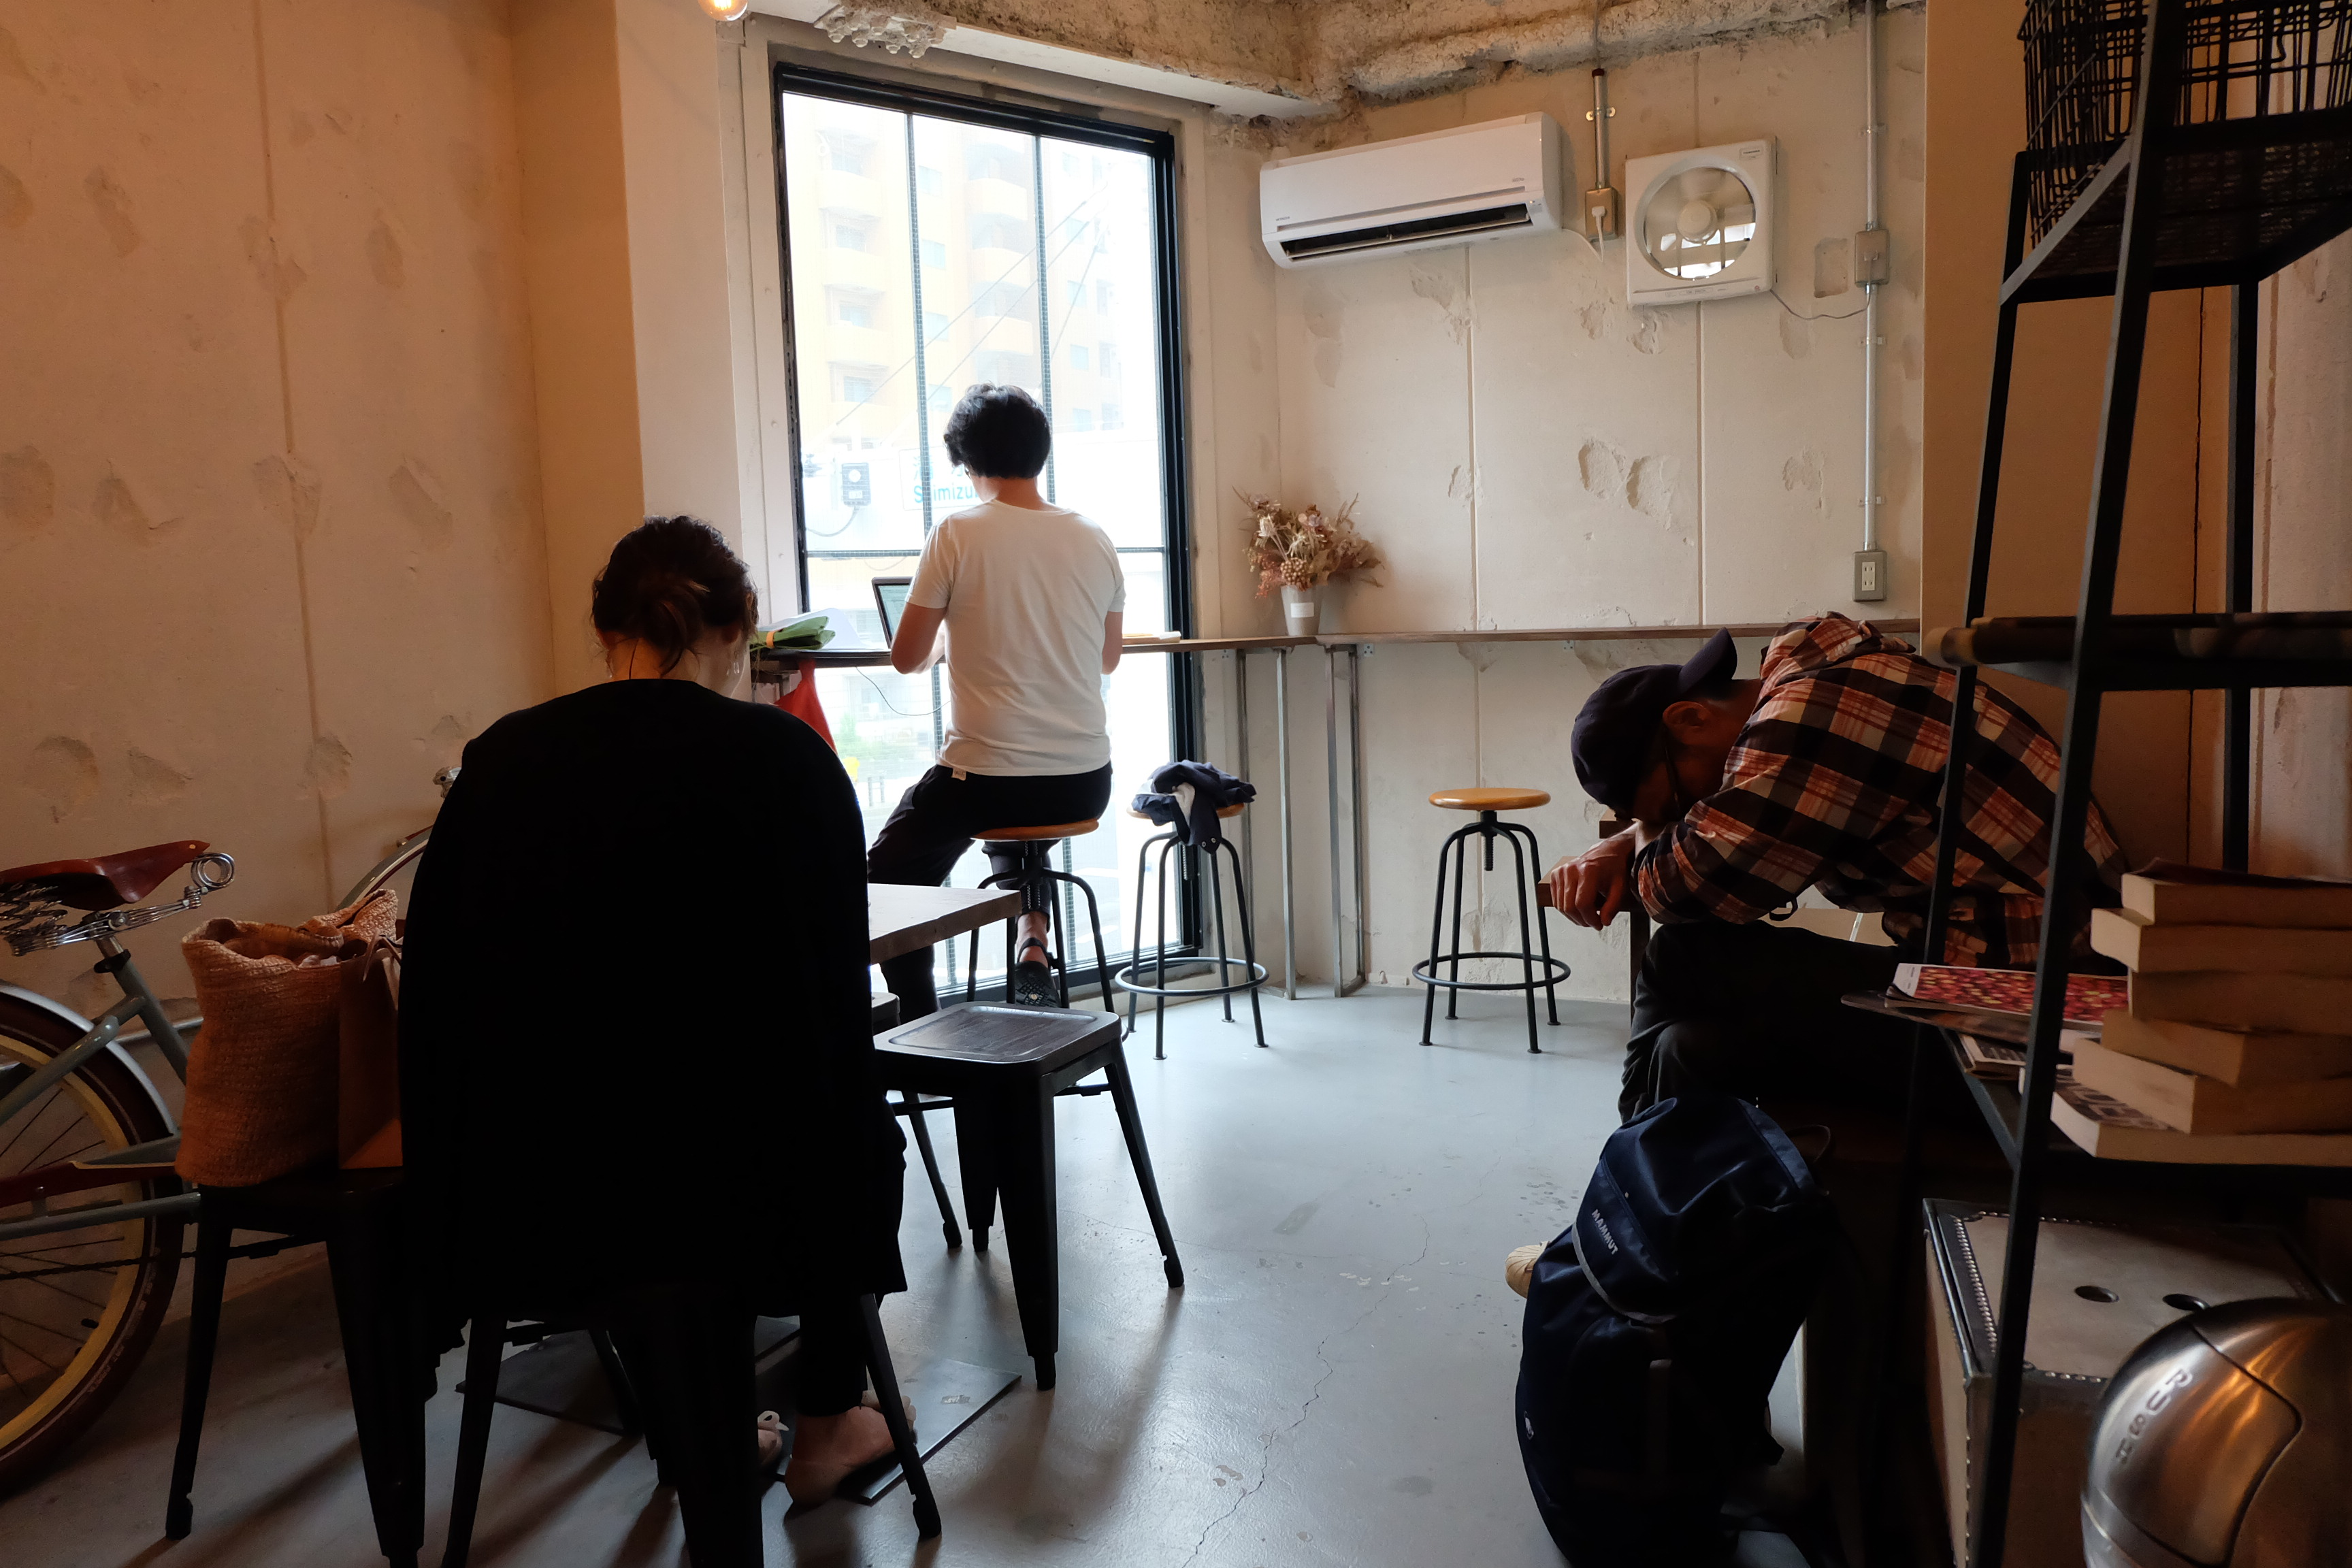 Customers working and sleeping at Counterpart Coffee Gallery Nishi Shinjuku Tokyo Japan